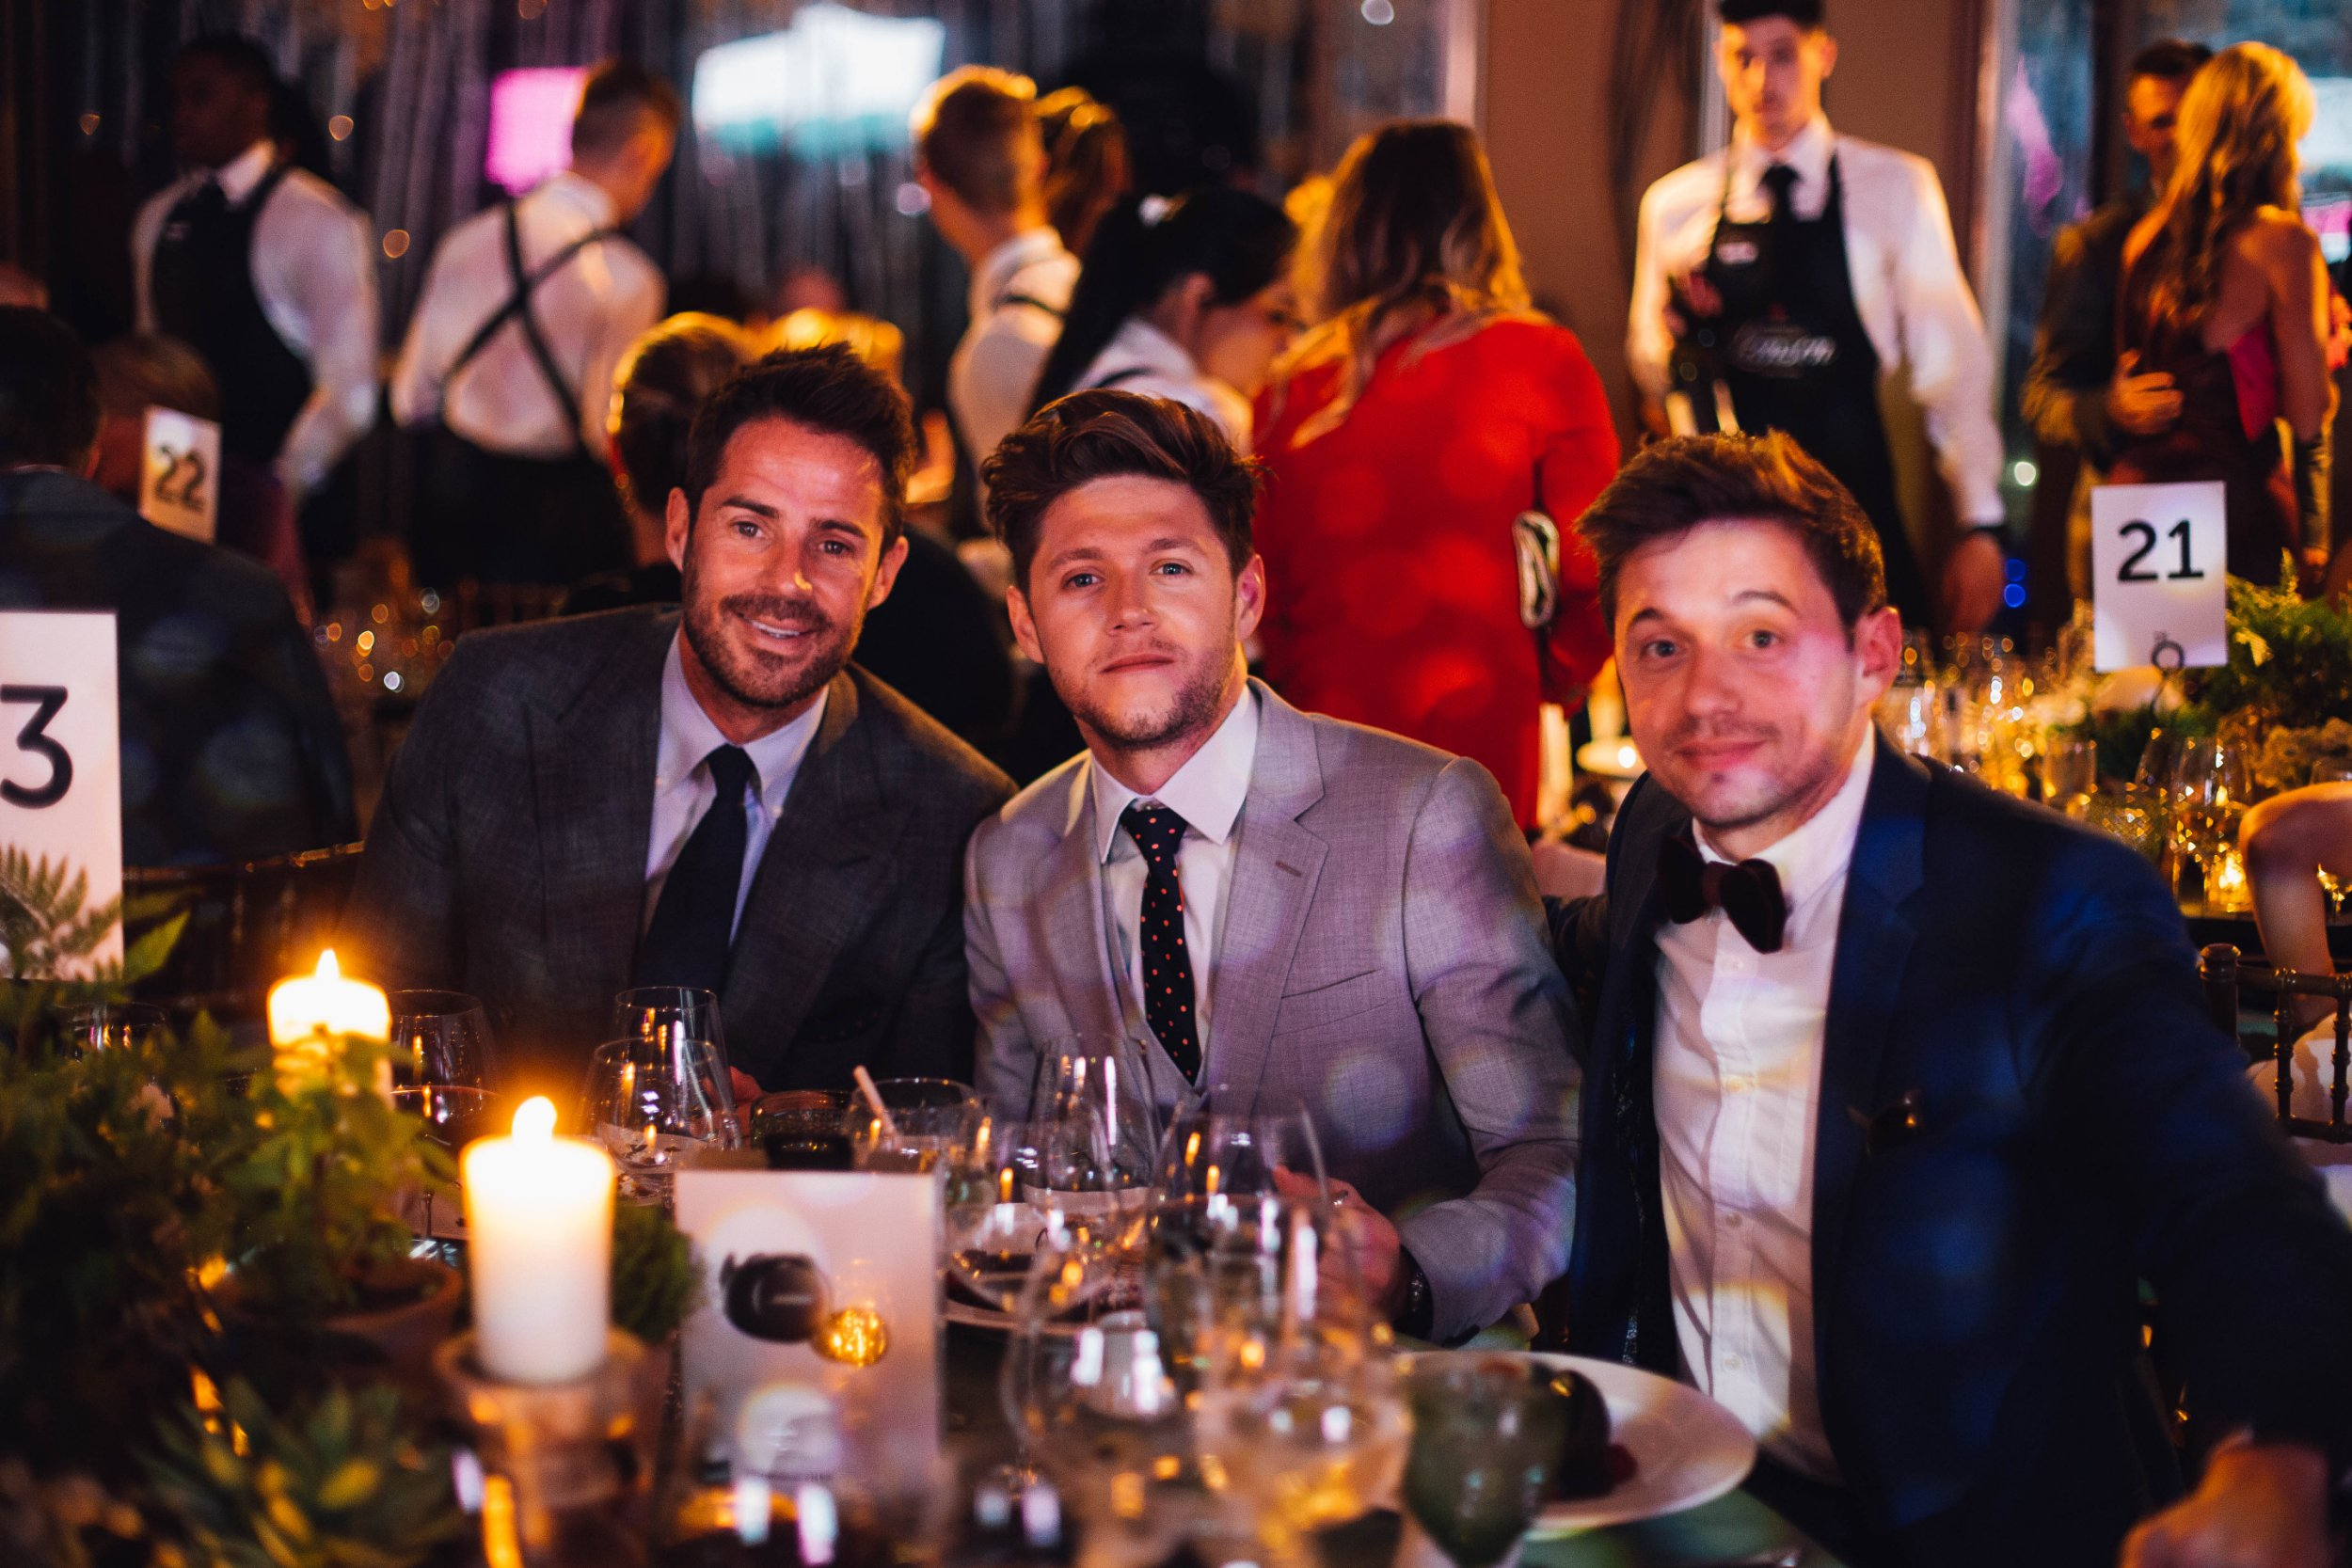 Inside Niall Horan's charity bash with pals Jamie Rednapp and Olly Murs where he dropped £32.5k on luxury holiday